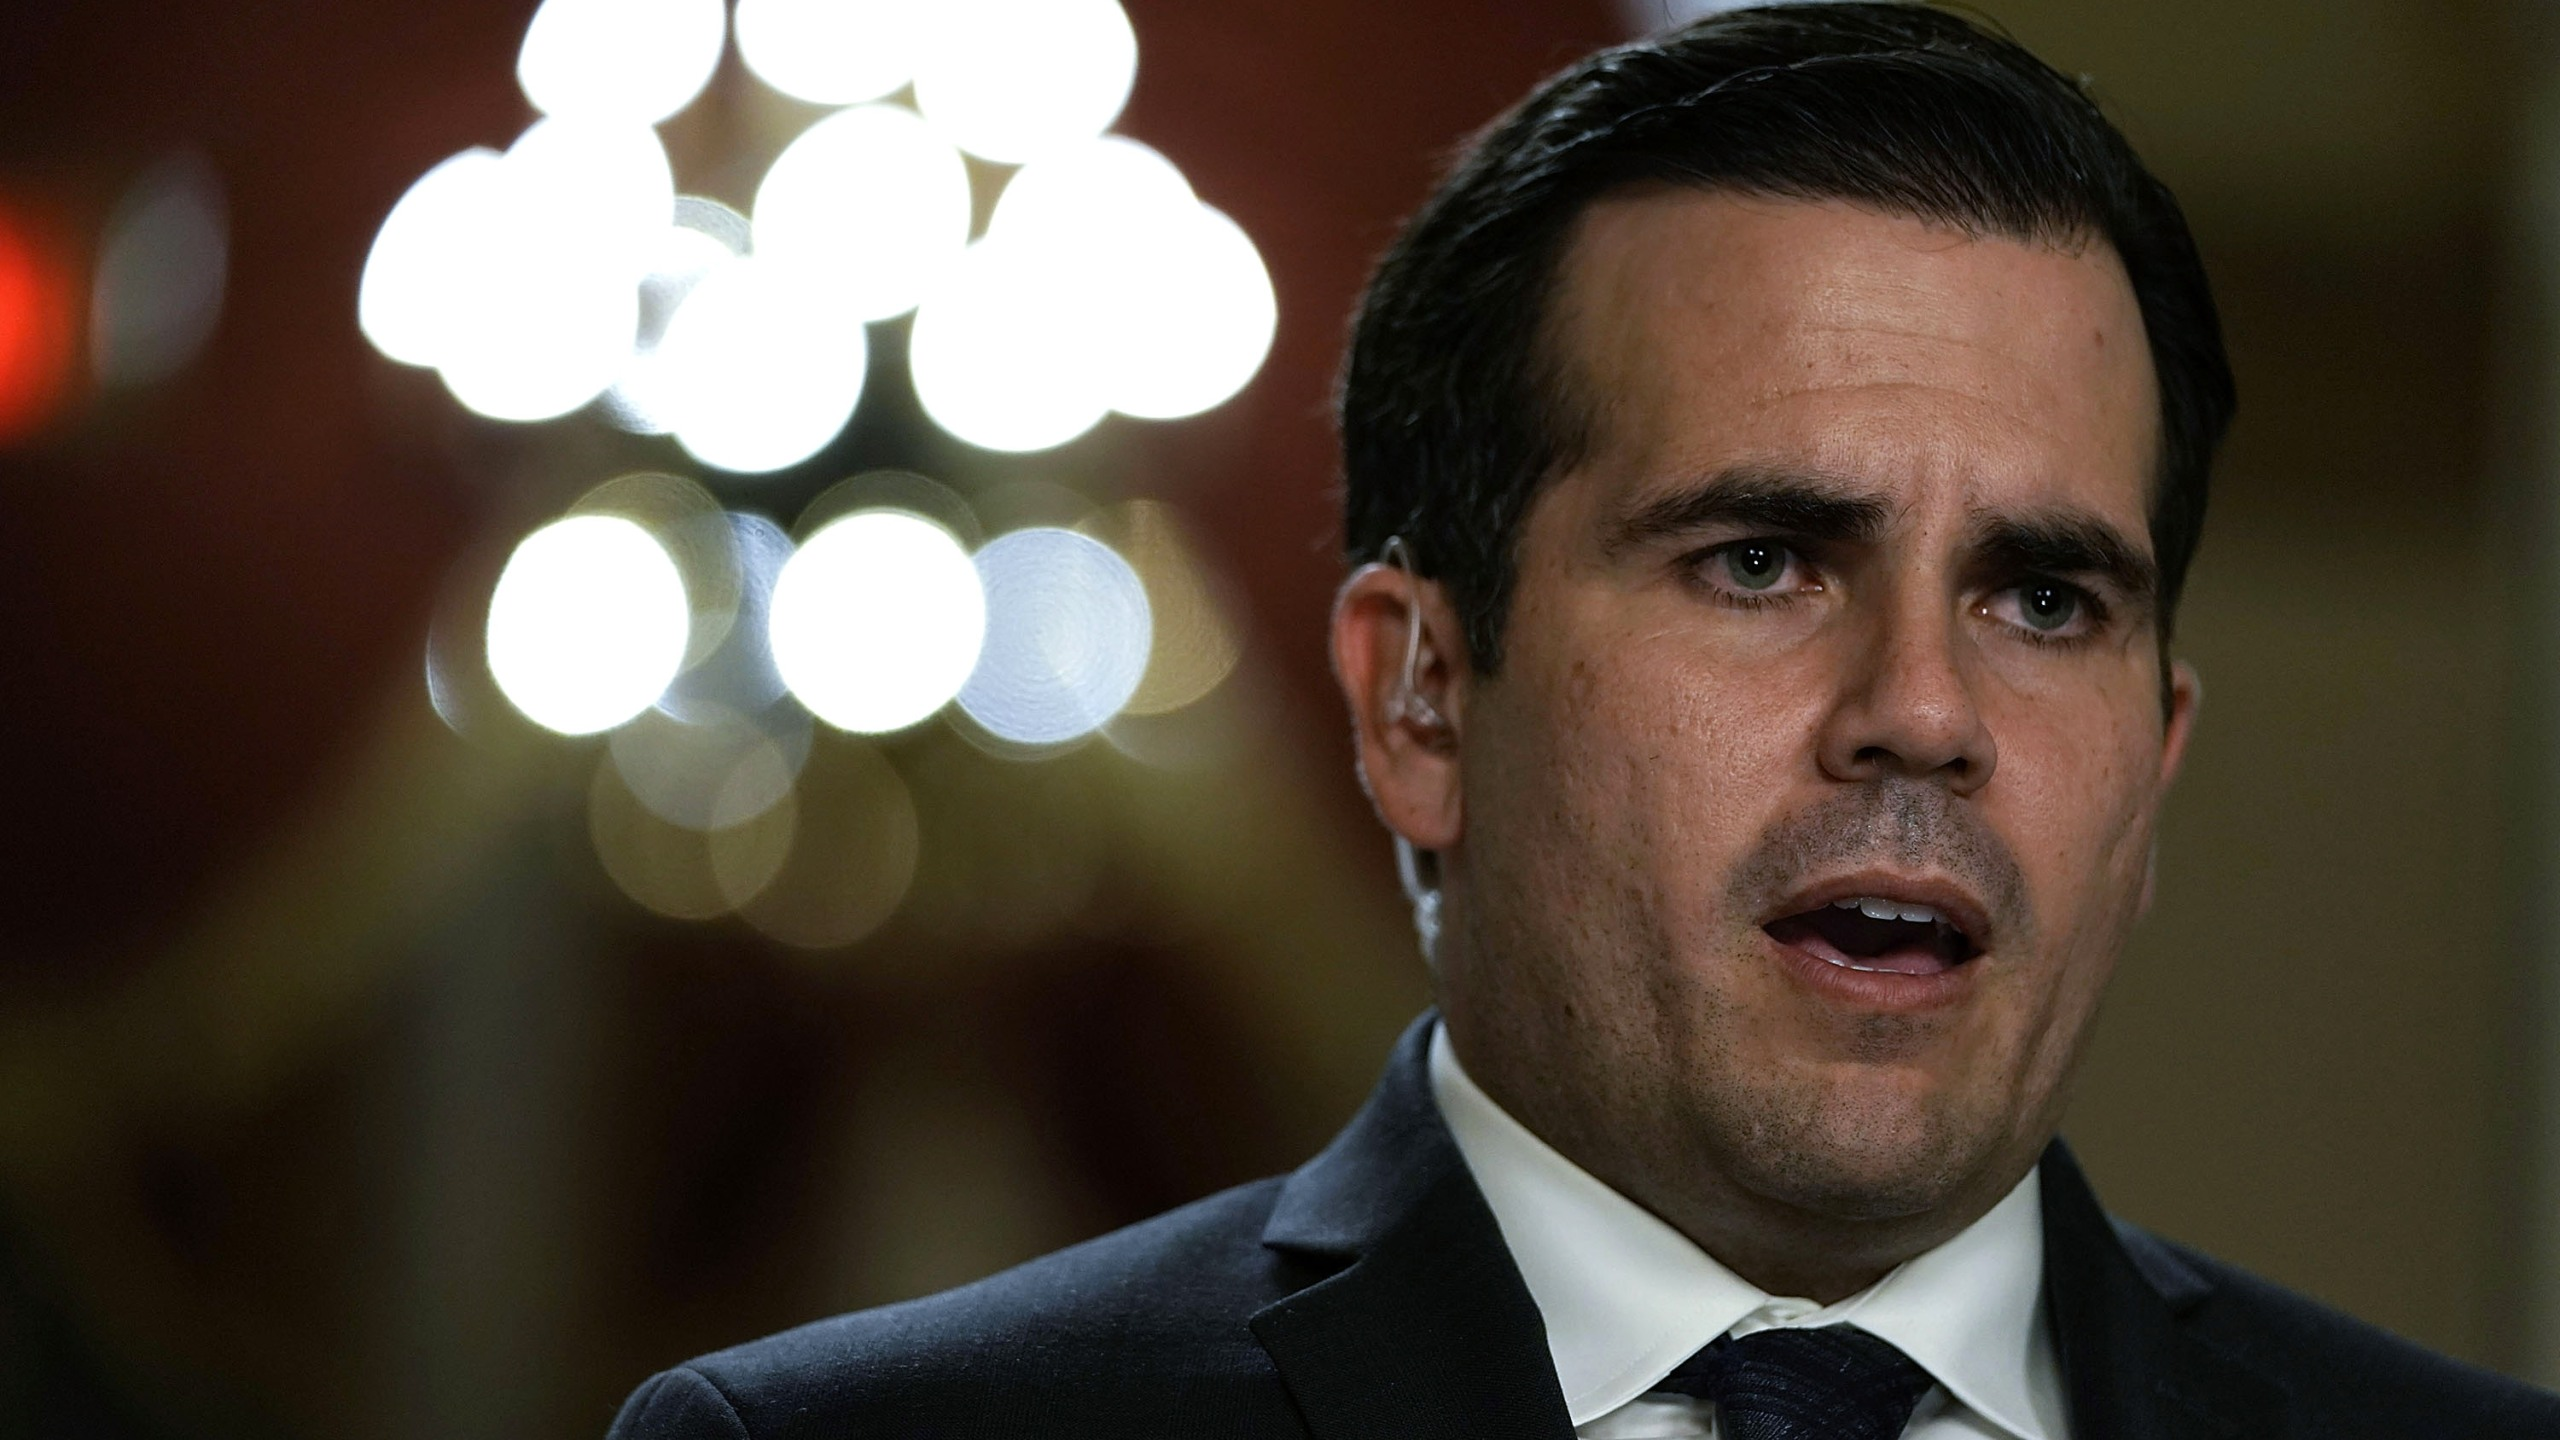 Puerto Rican Gov. Ricardo Rossello is interviewed by a TV channel after a House vote at the Capitol December 21, 2017. (Credit: Alex Wong/Getty Images)